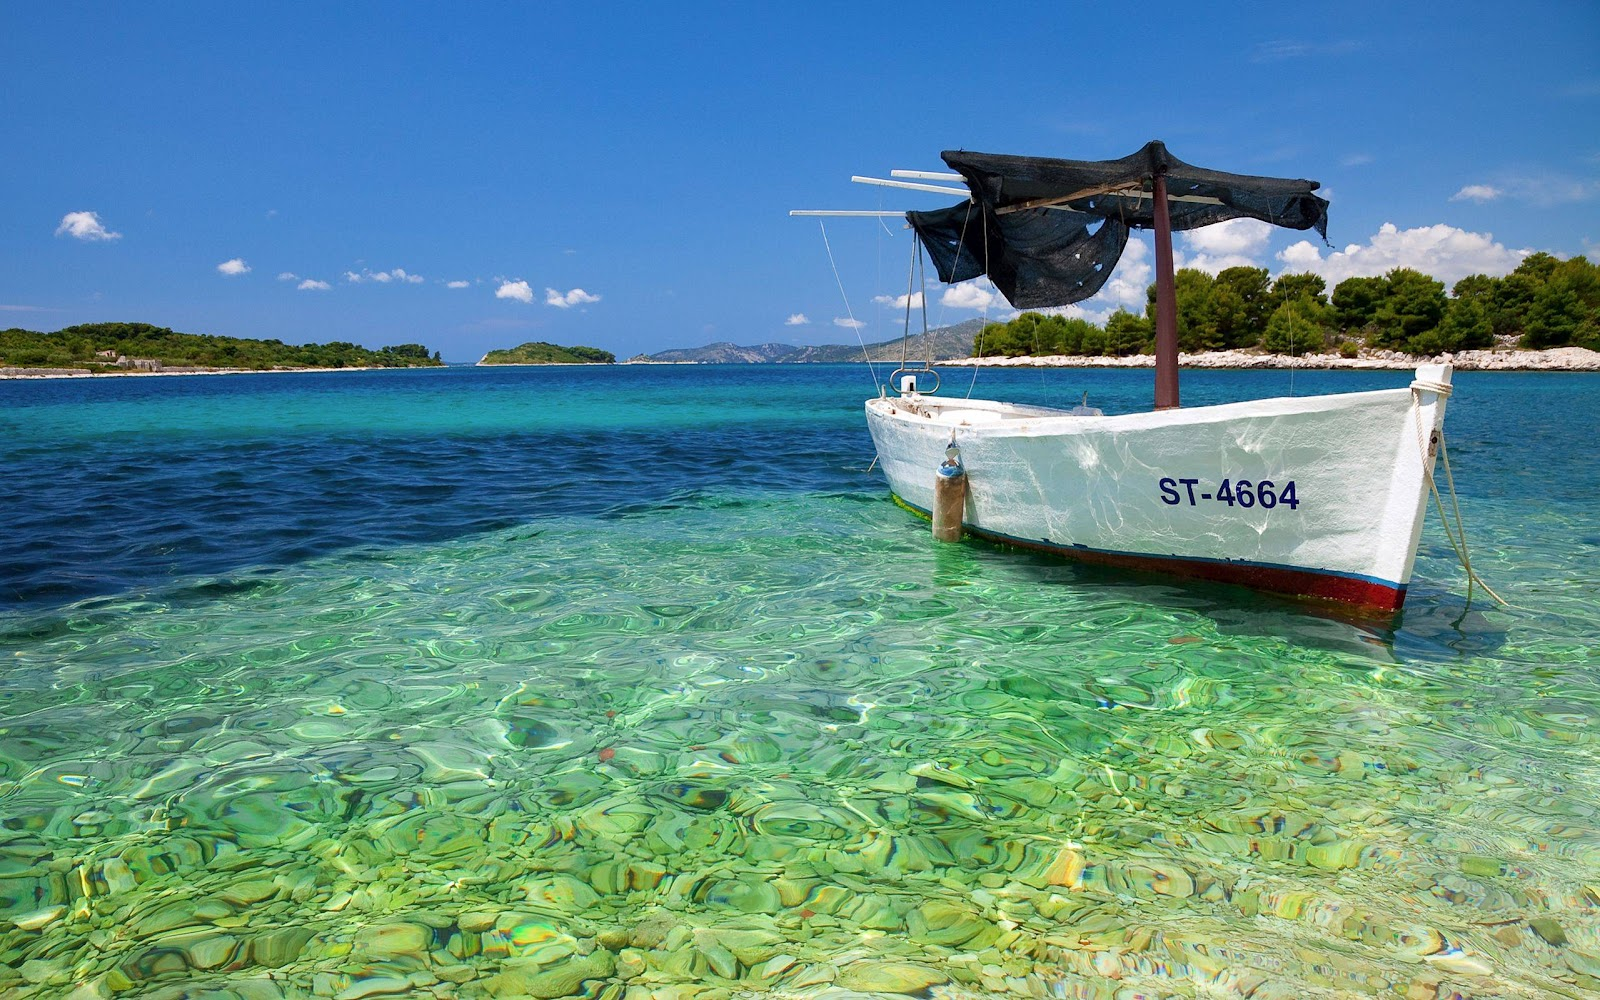 Desktop Tropical Beach With Boat